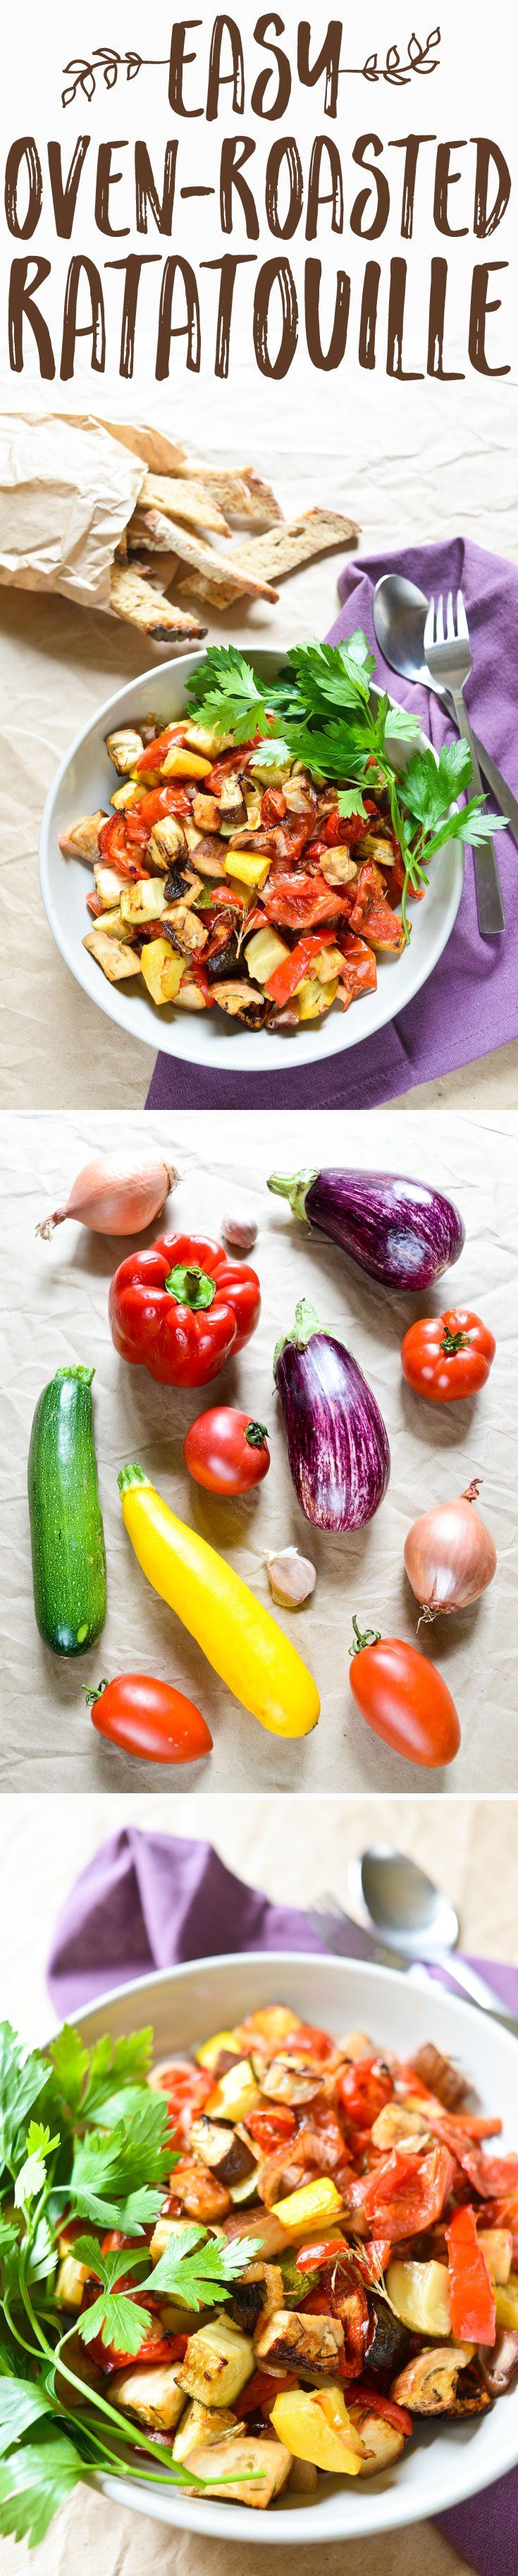 An easy twist of the stovetop classic, this oven-roasted ratatouille is faster and gives an incredible roasted flavor. It is even better the following day.